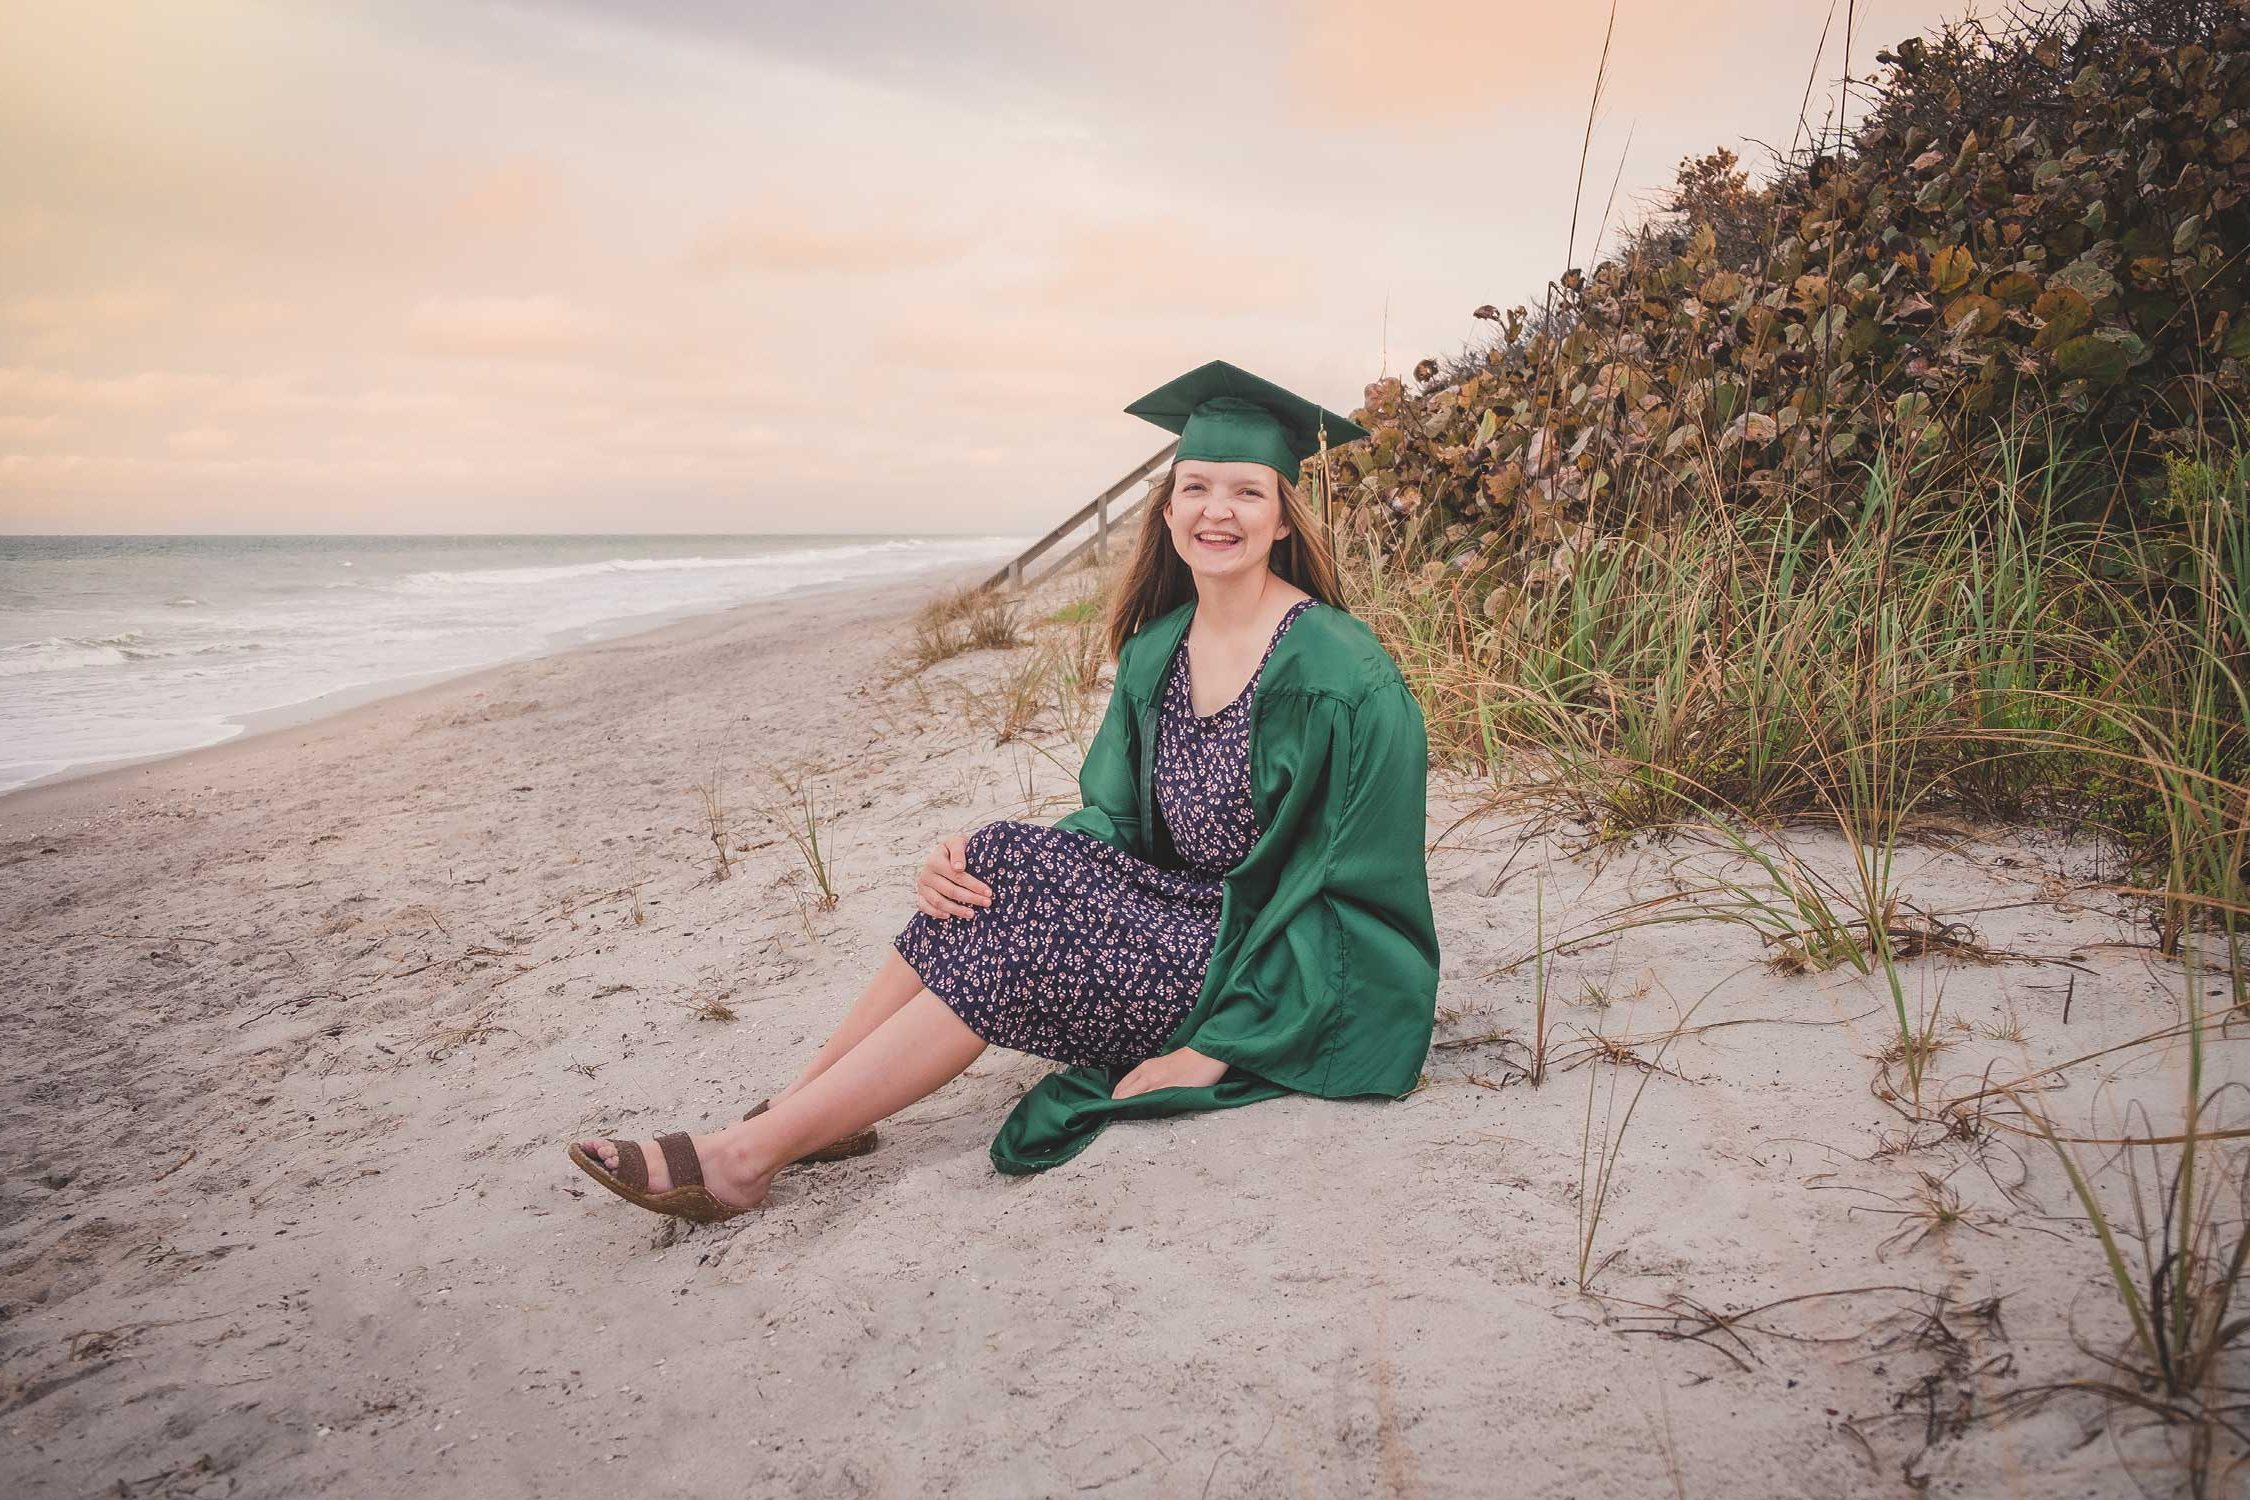 Graduation photos on the beach